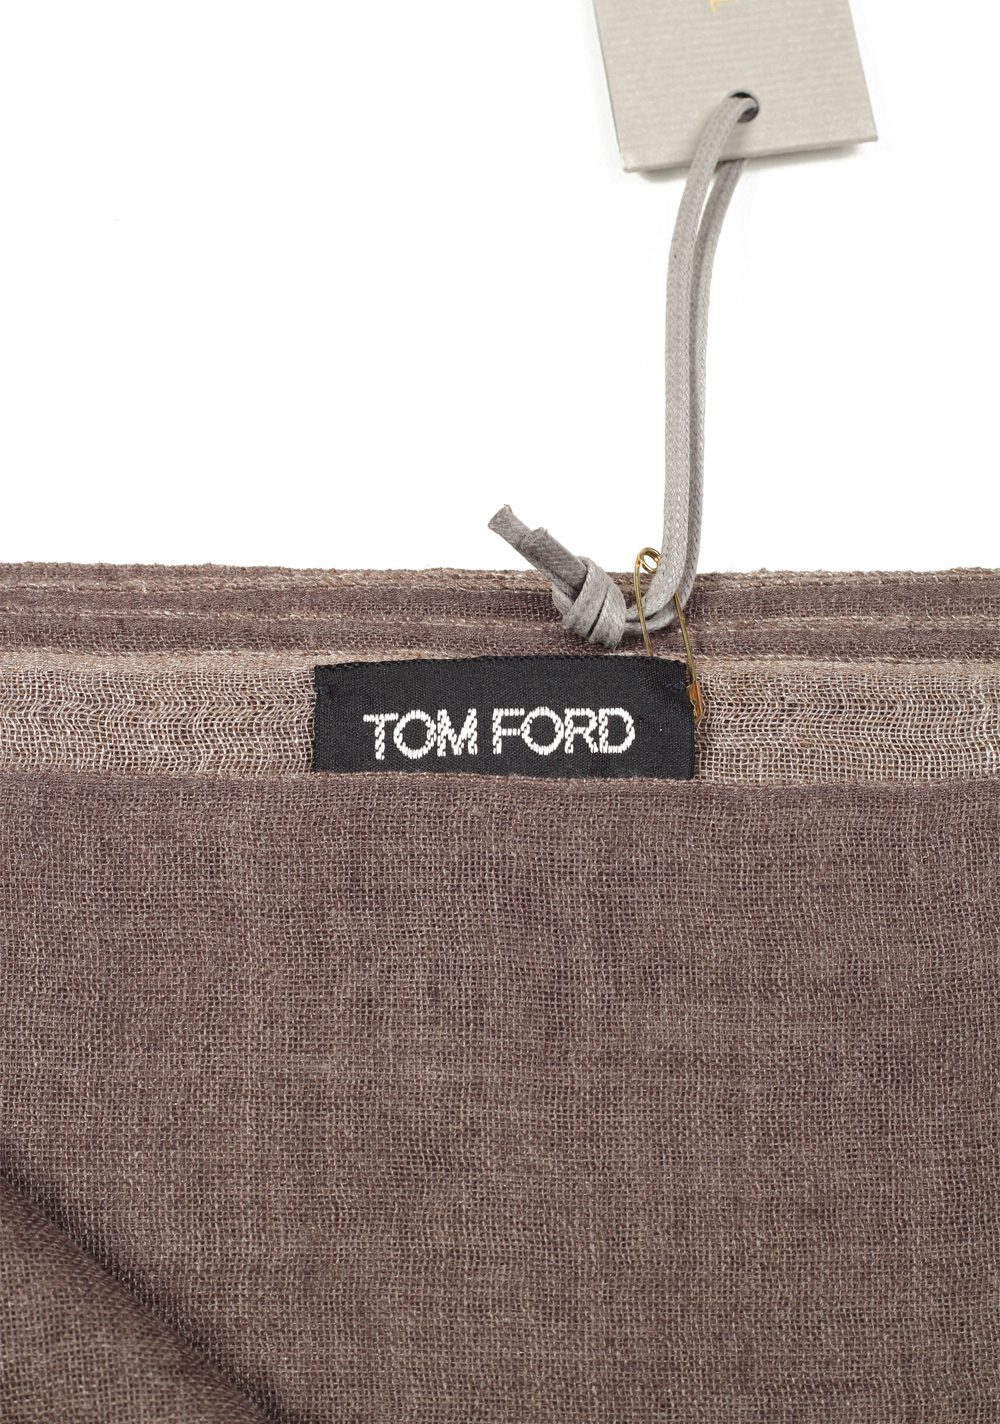 Tom Ford Brown Cashmere Silk Signature Scarf 75″ / 24″ | Costume Limité